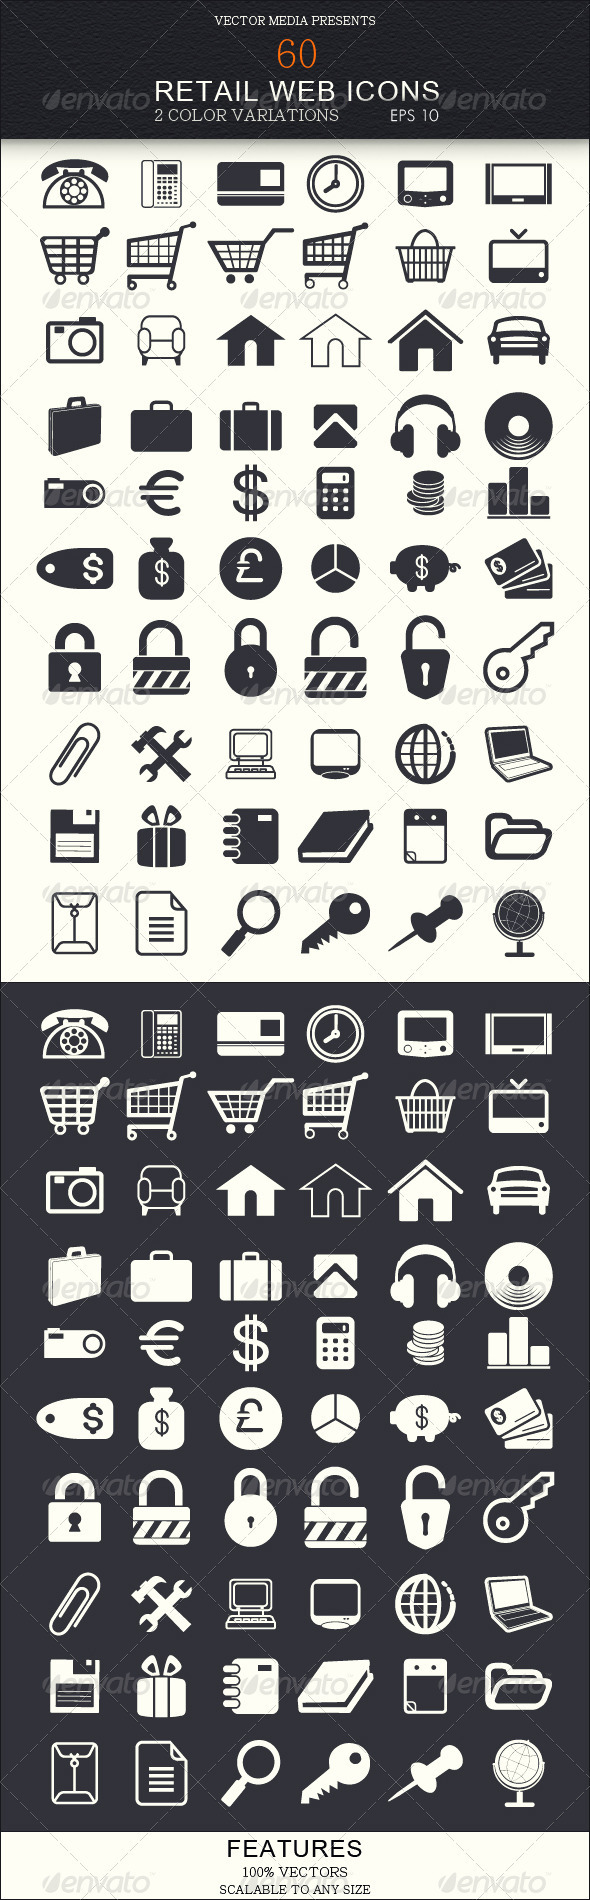 60 Retail Web Icons - Web Icons